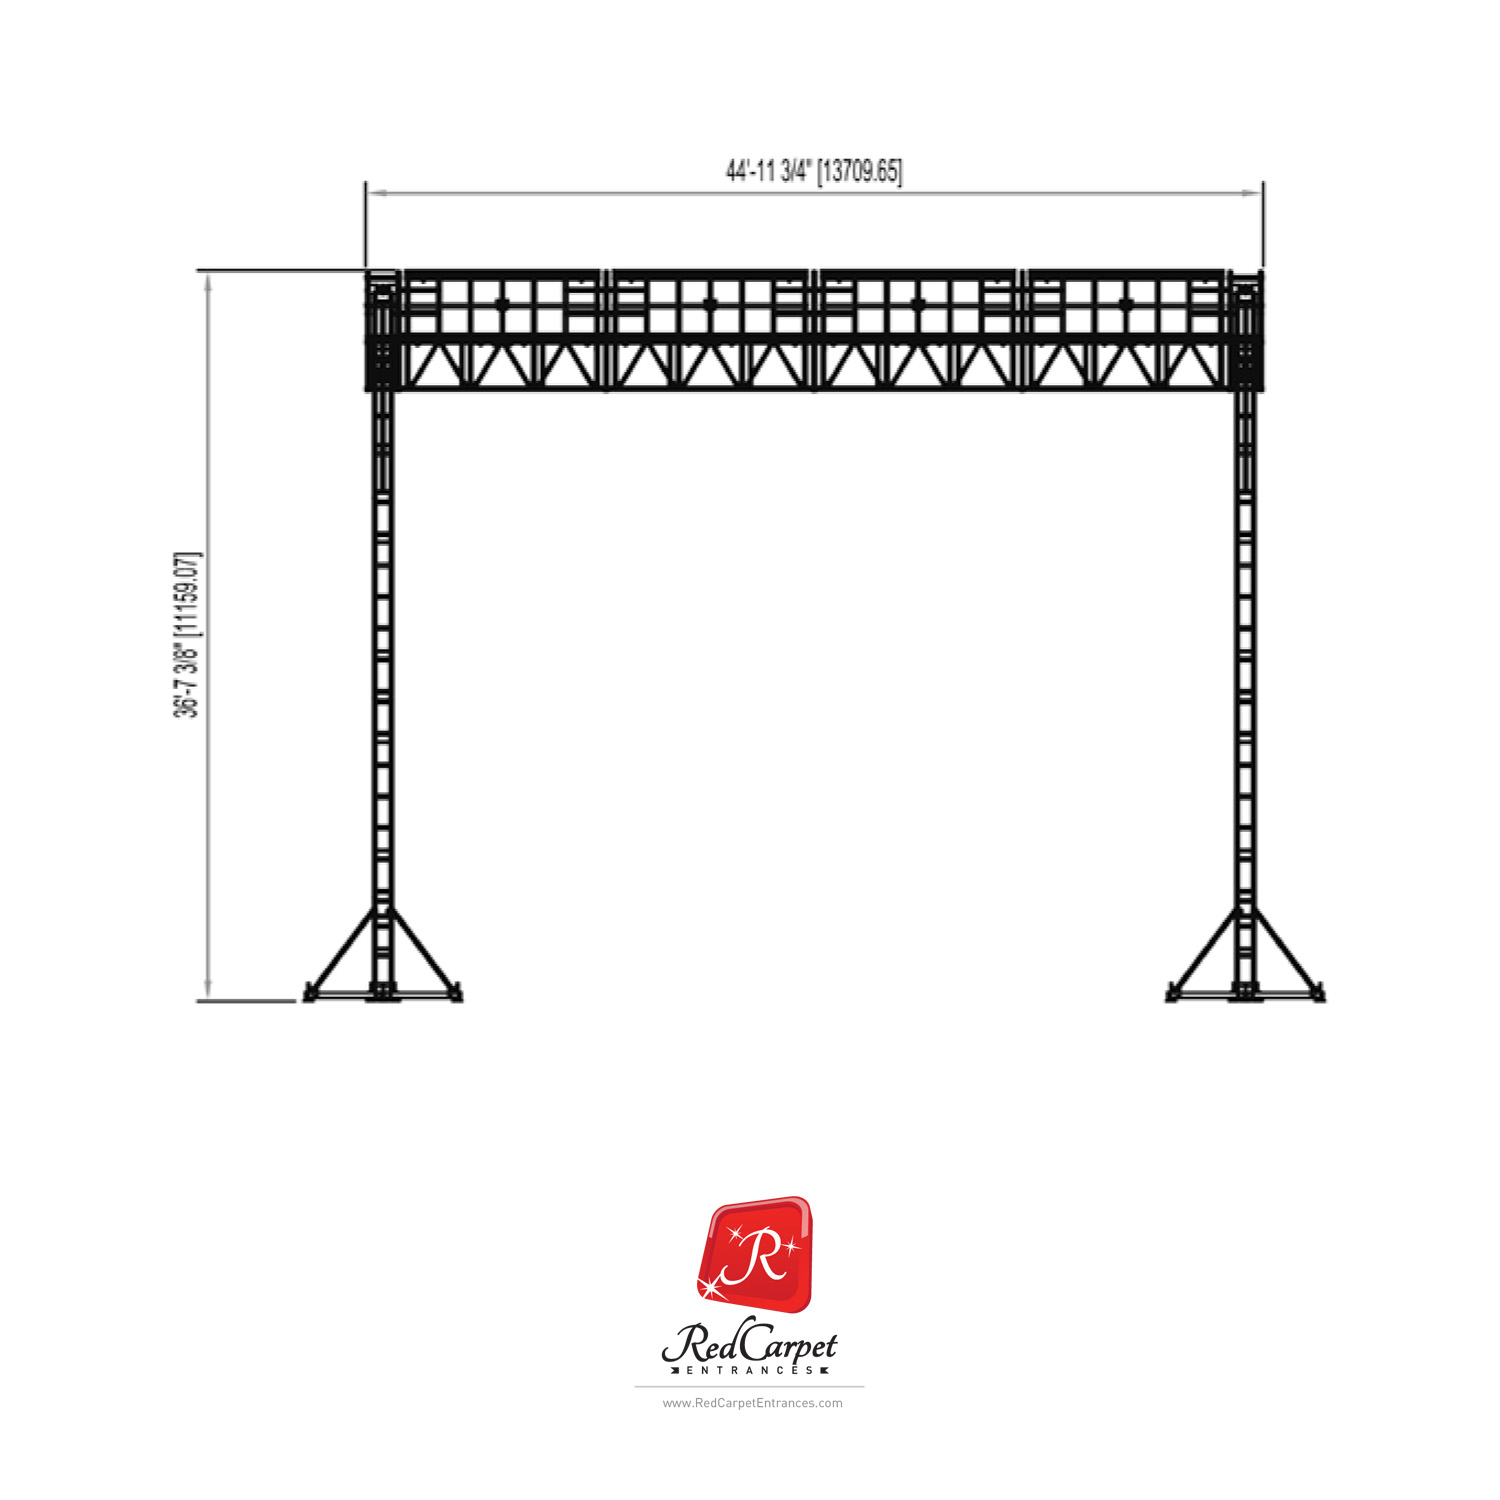 40X40 LADDER ROOF WITH PA WINGS TRUSS — Red Carpet Runner & Red Carpet  Backdrop Event Shop